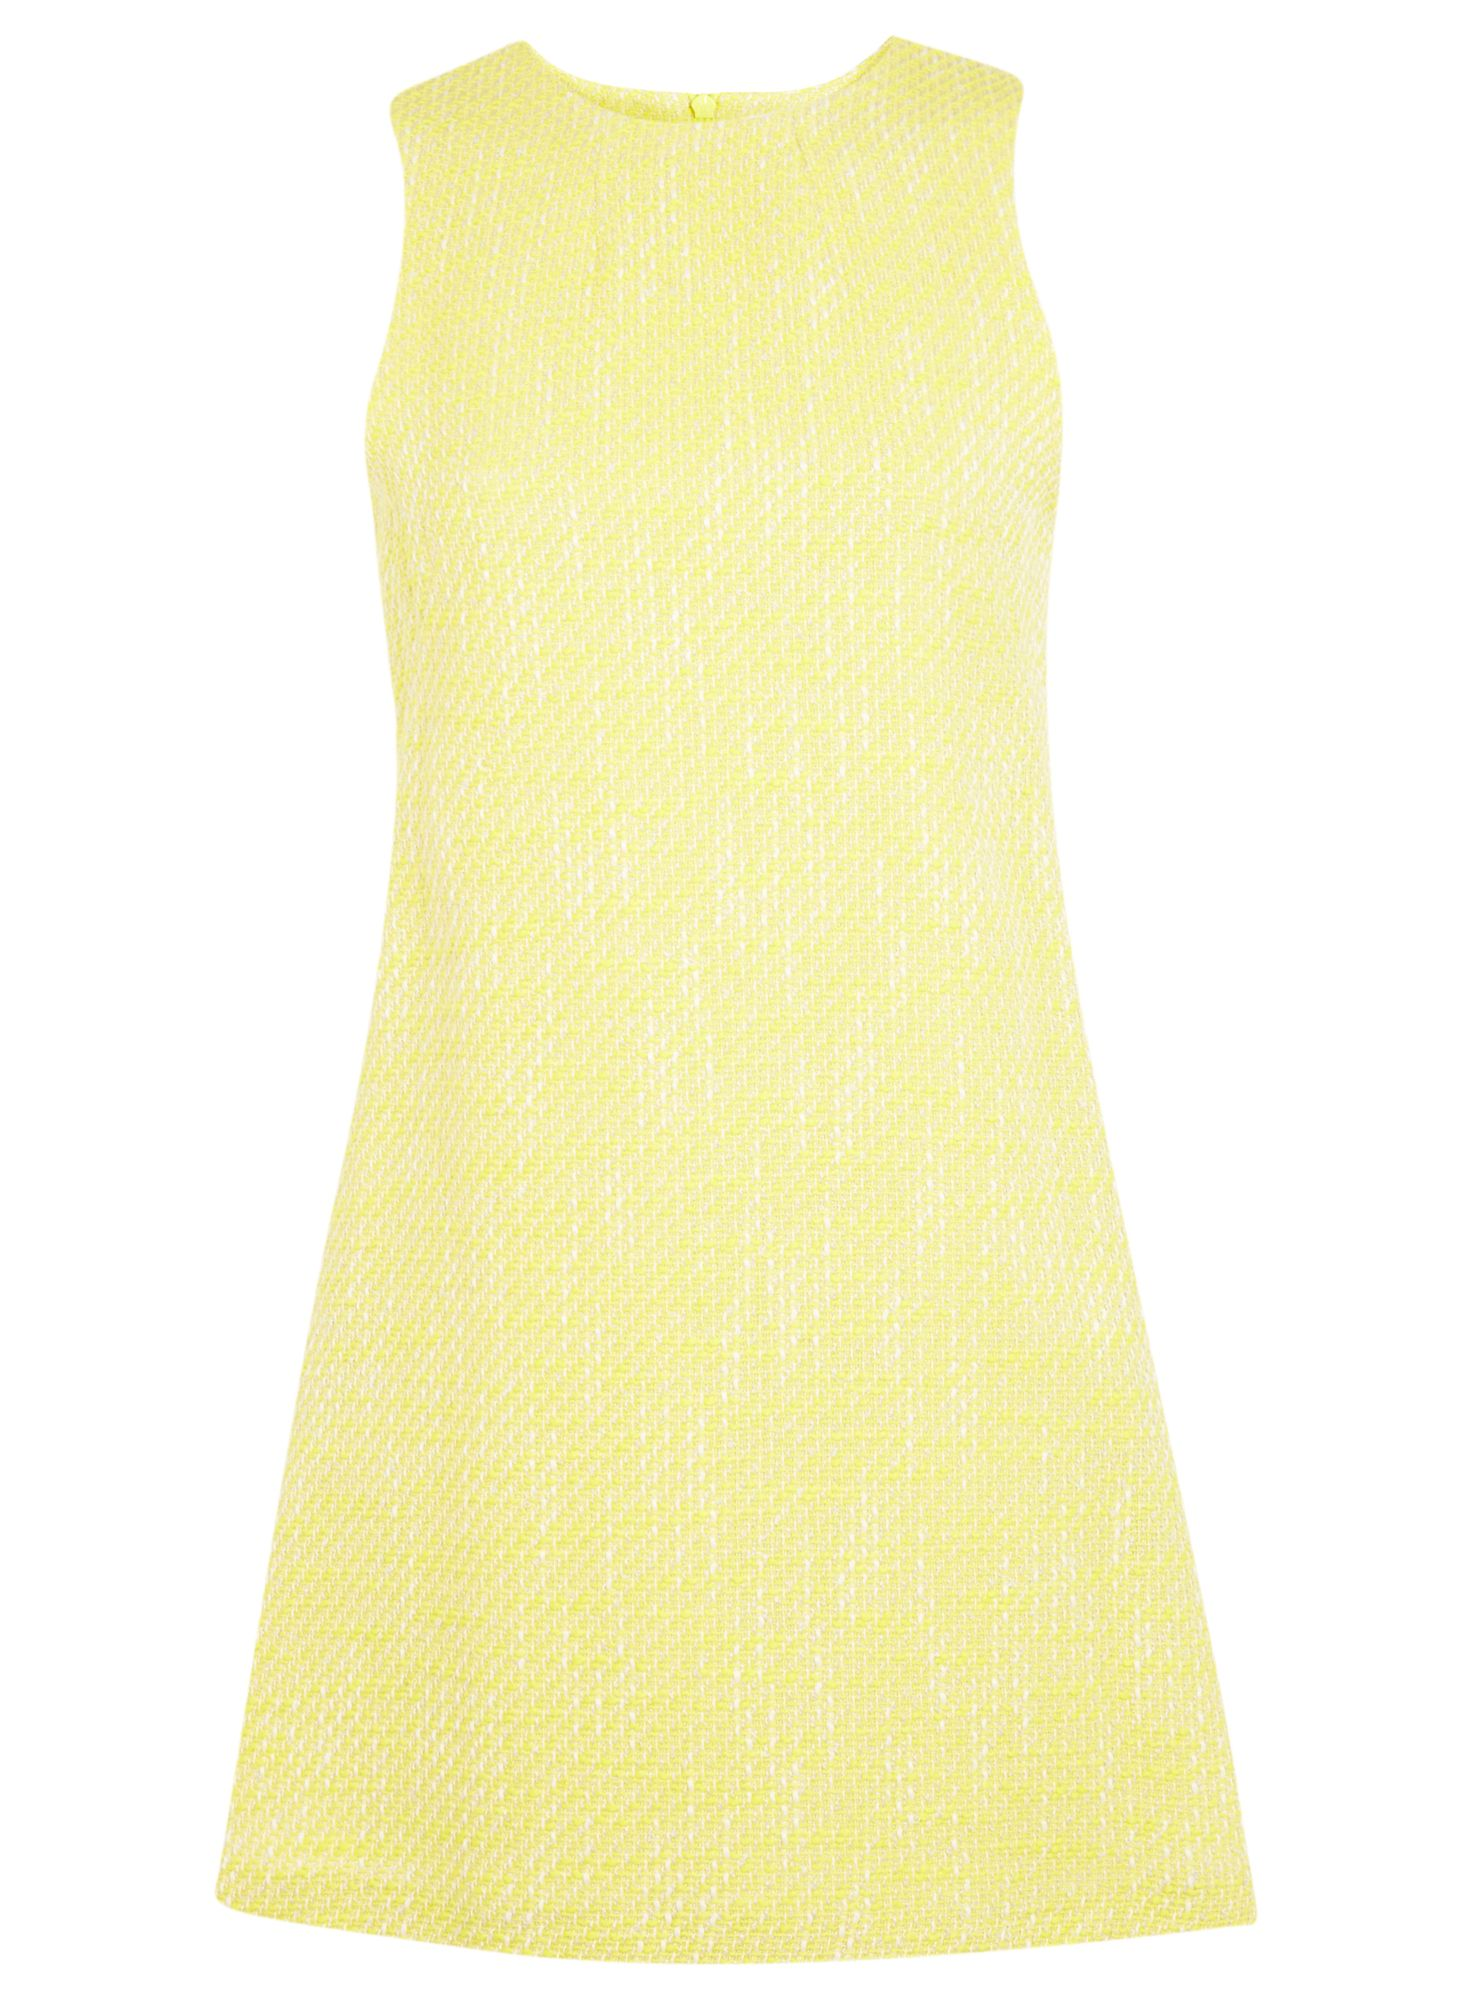 Yellow boucle shift dress